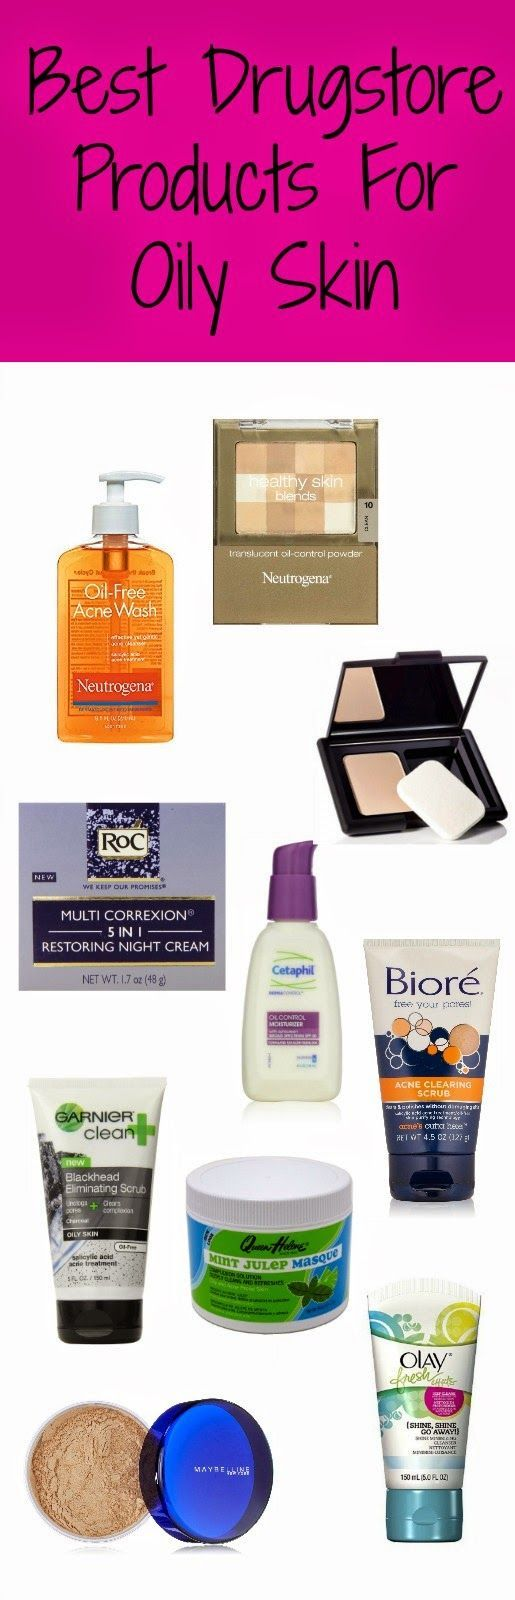 Beauty Products for Oily Skin And They Are All From Drugstores! Best Beauty Products for Oily Skin And They Are All From Drugstores! | Everything PrettyBest Beauty Products for Oily Skin And They Are All From Drugstores! | Everything Pretty